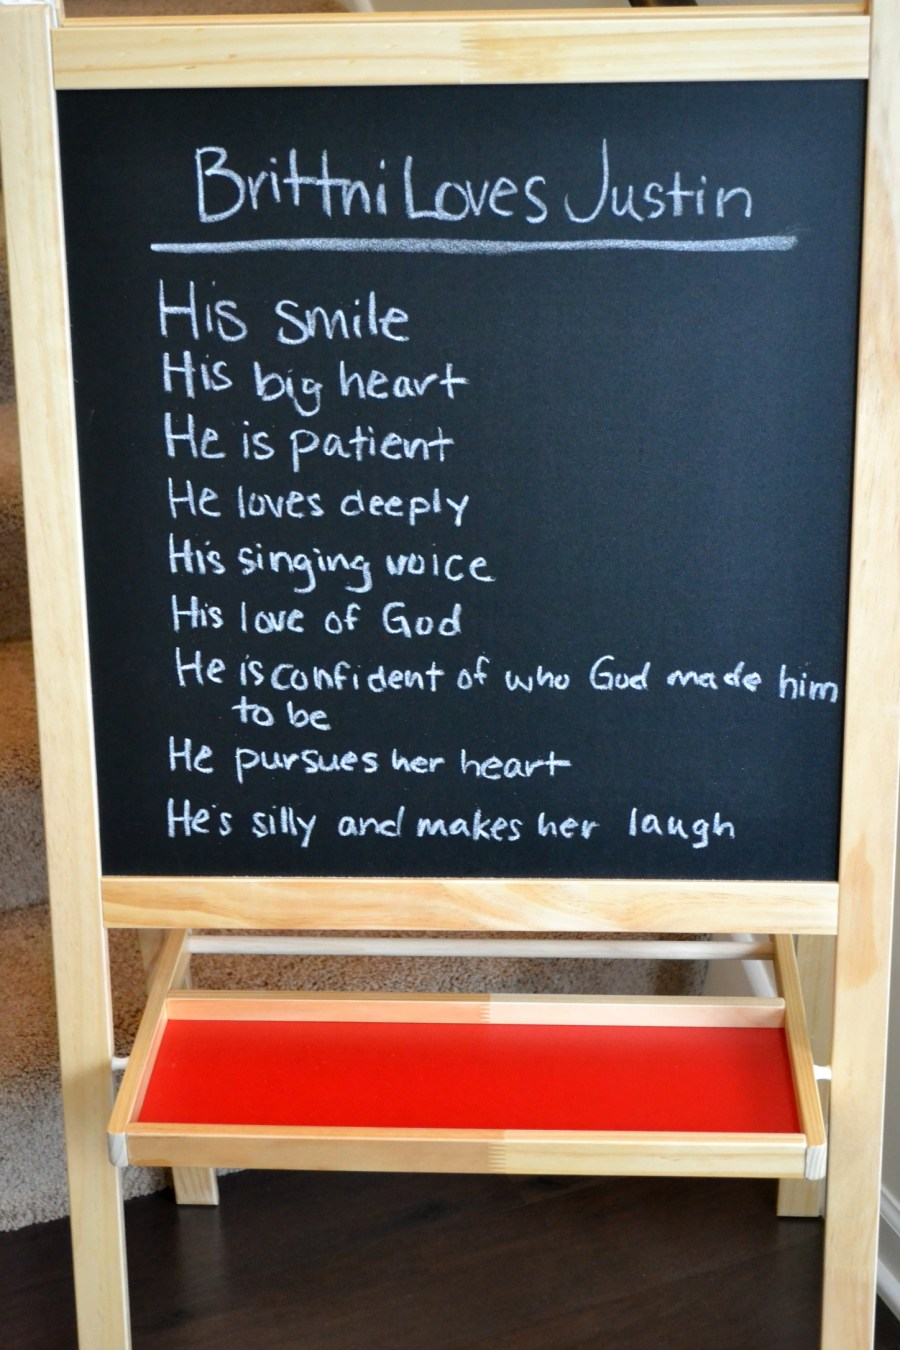 What She Loves About Him | www.thisgratefulmama.com